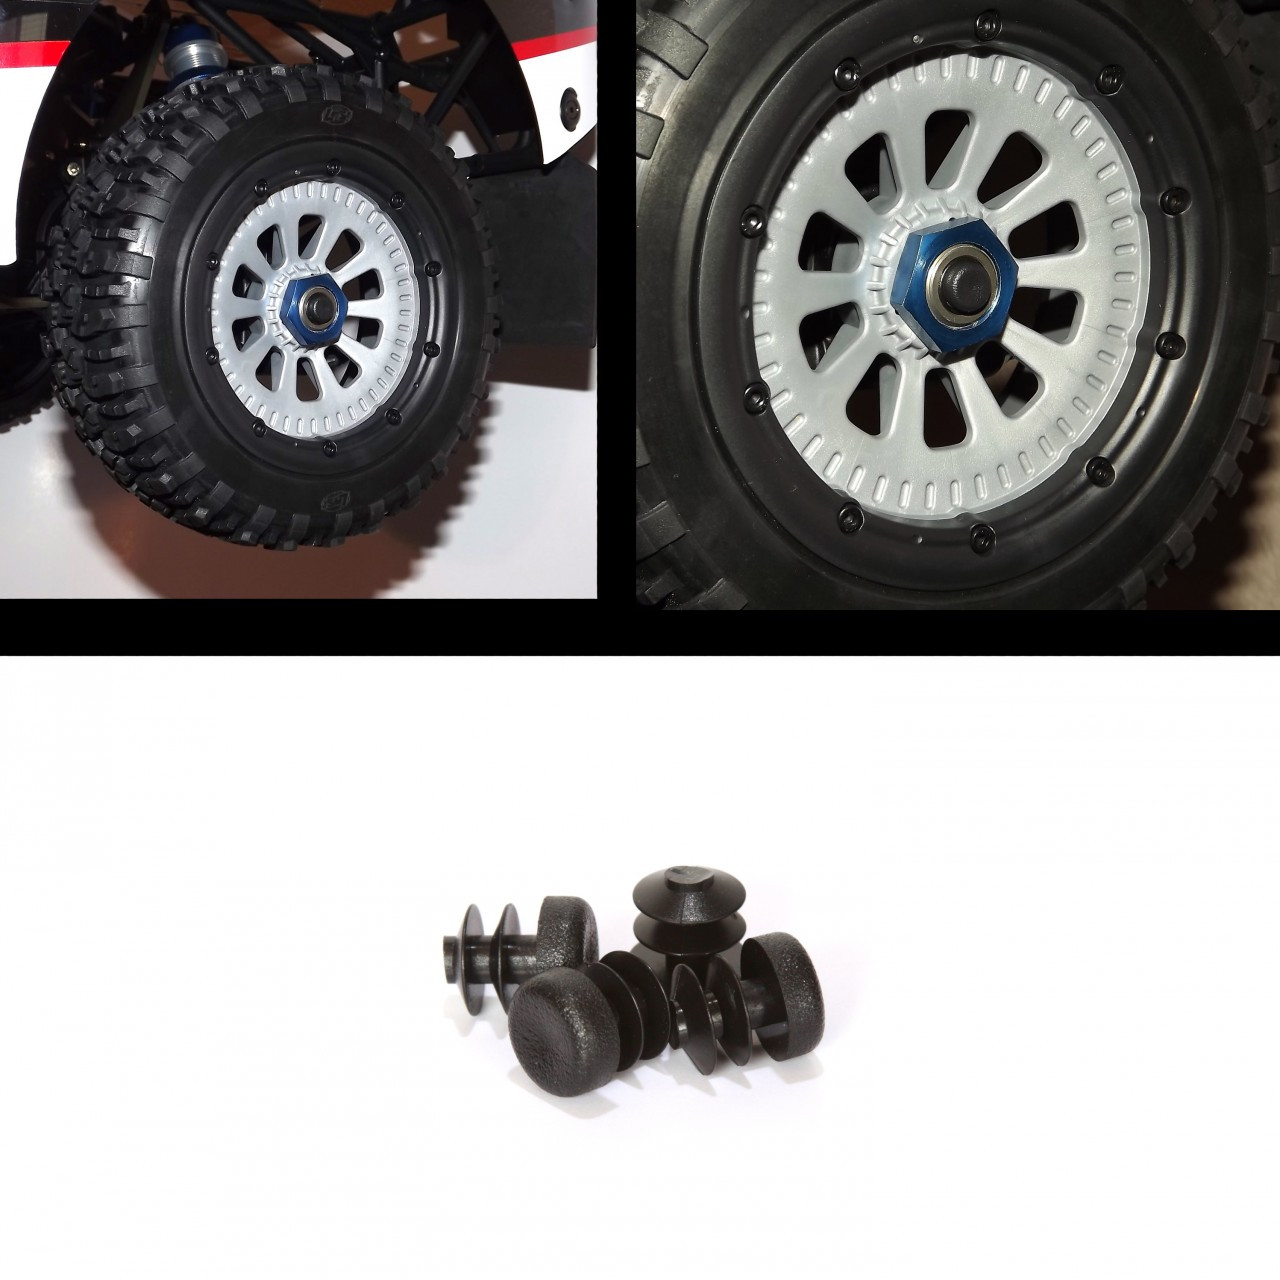 Losi 5ive-T Plastic axle caps simply push into the holes on the stock axles.  They keep out mud and debris.